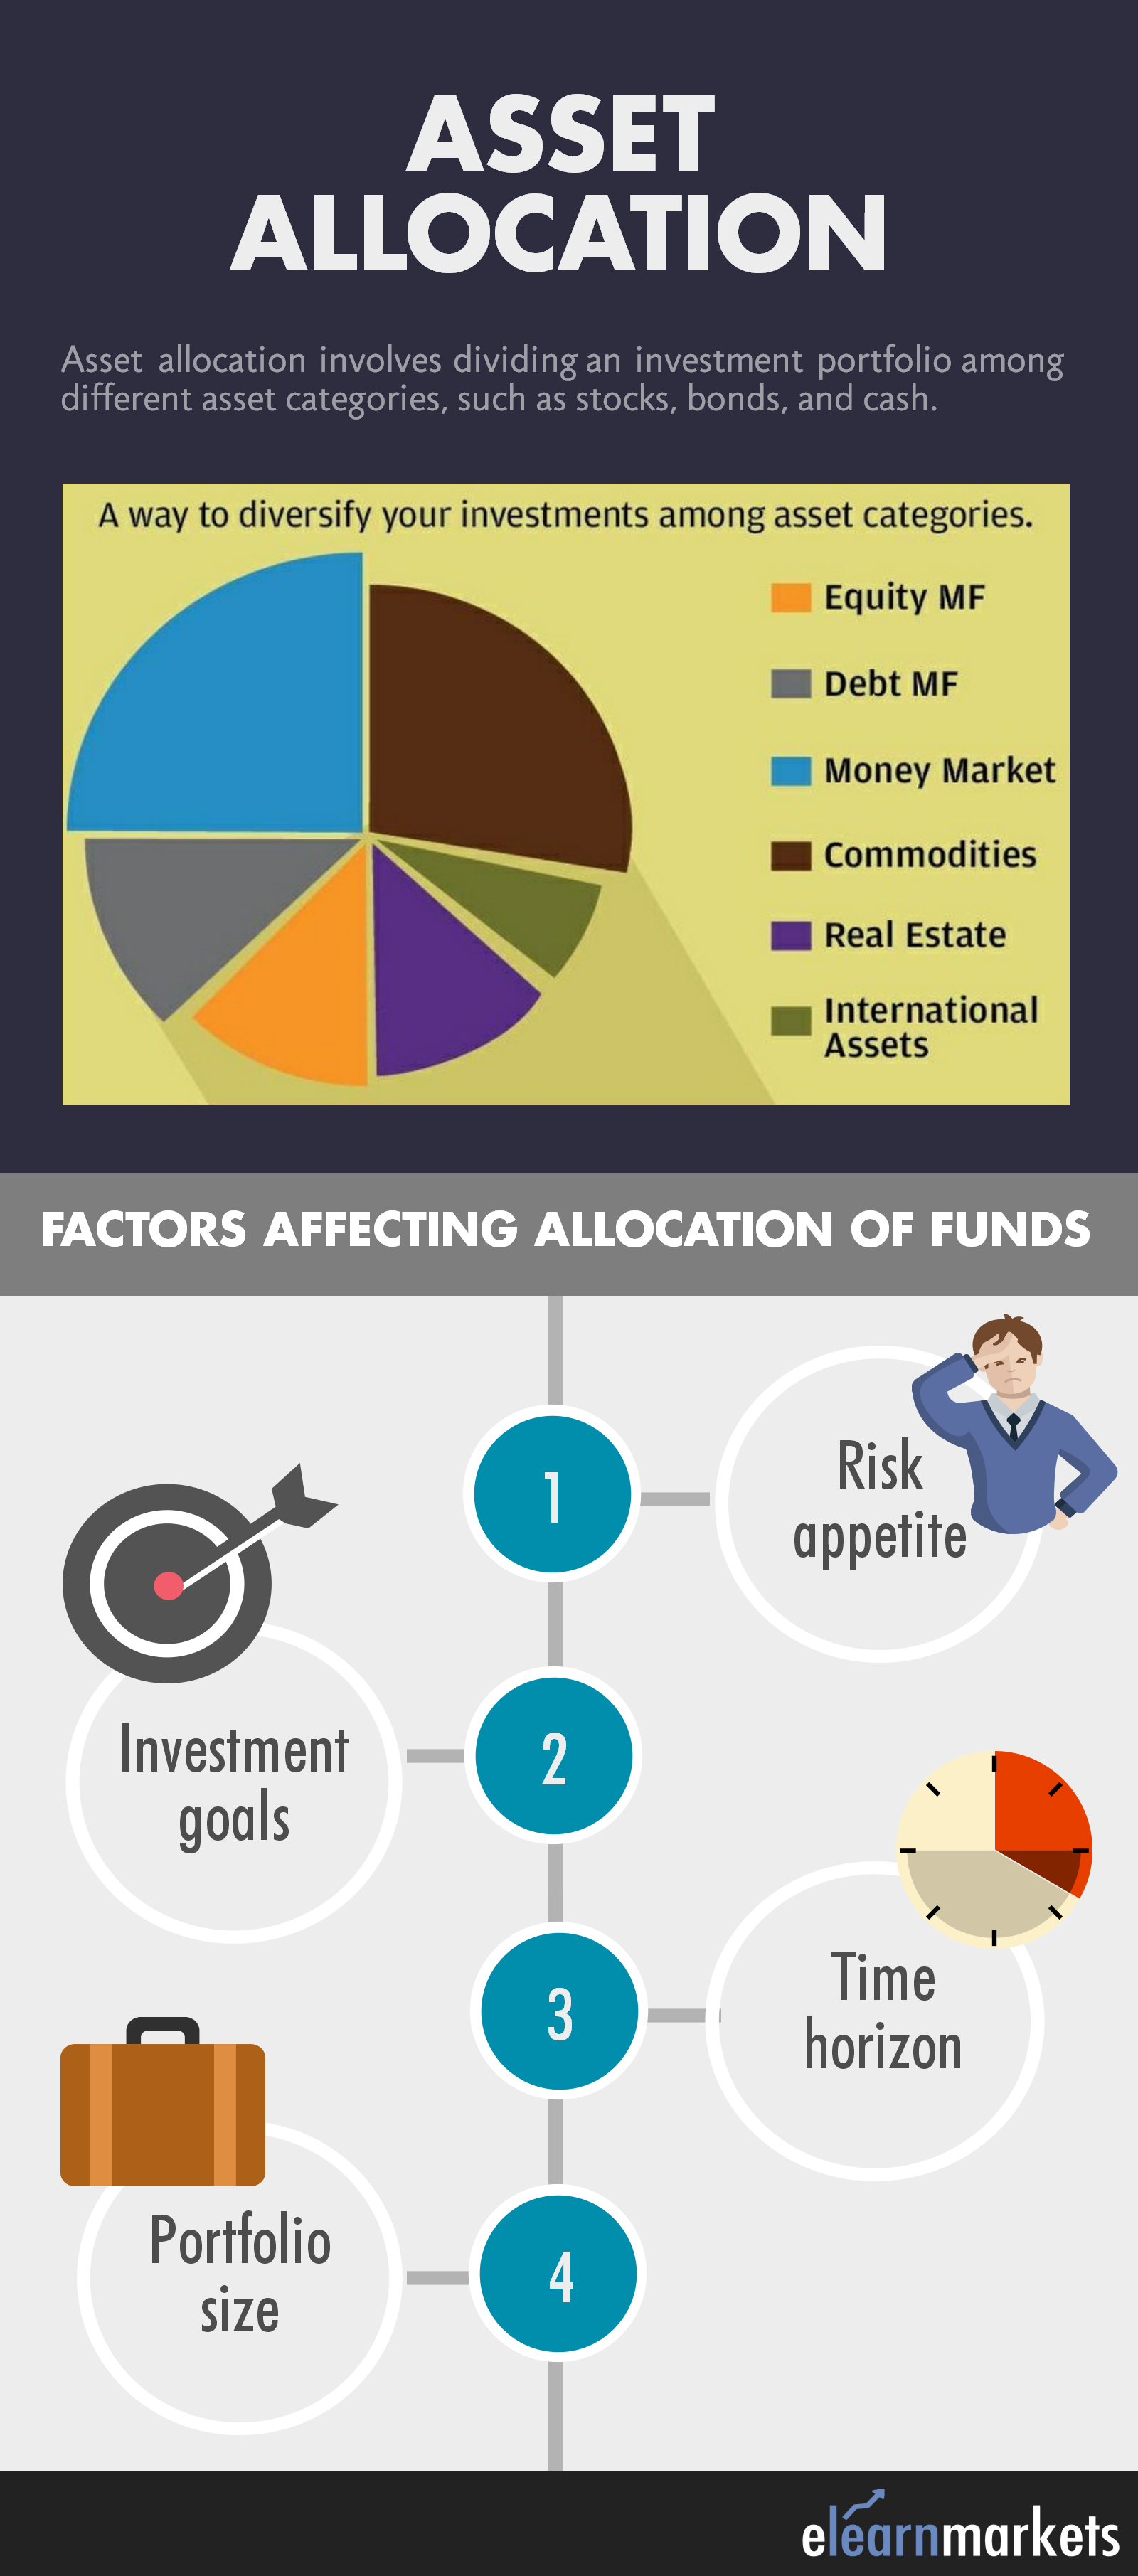 a case study of an individual investment portfolio asset allocation and strategy Because asset allocation is the major determinant of risk and return for a given portfolio1 over time, however, as a portfolio's investments produce different returns, the portfolio will likely drift from its target asset allocation, acquiring risk-and-return characteristics that may be inconsistent with an investor's goals and preferences.